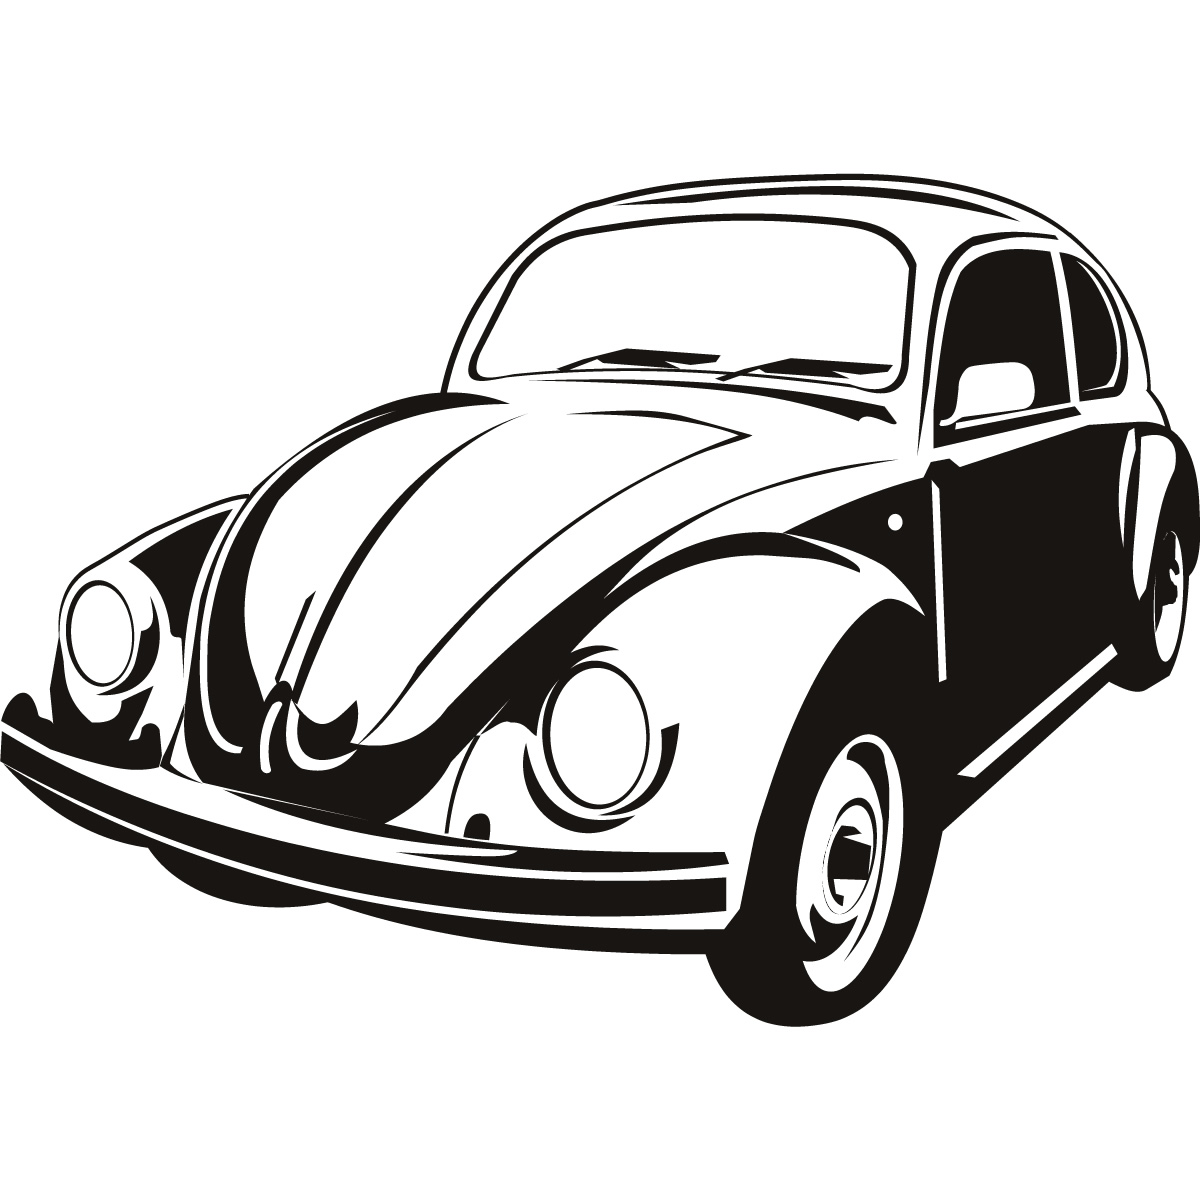 Free Vw Cliparts Download Free Clip Art Free Clip Art On